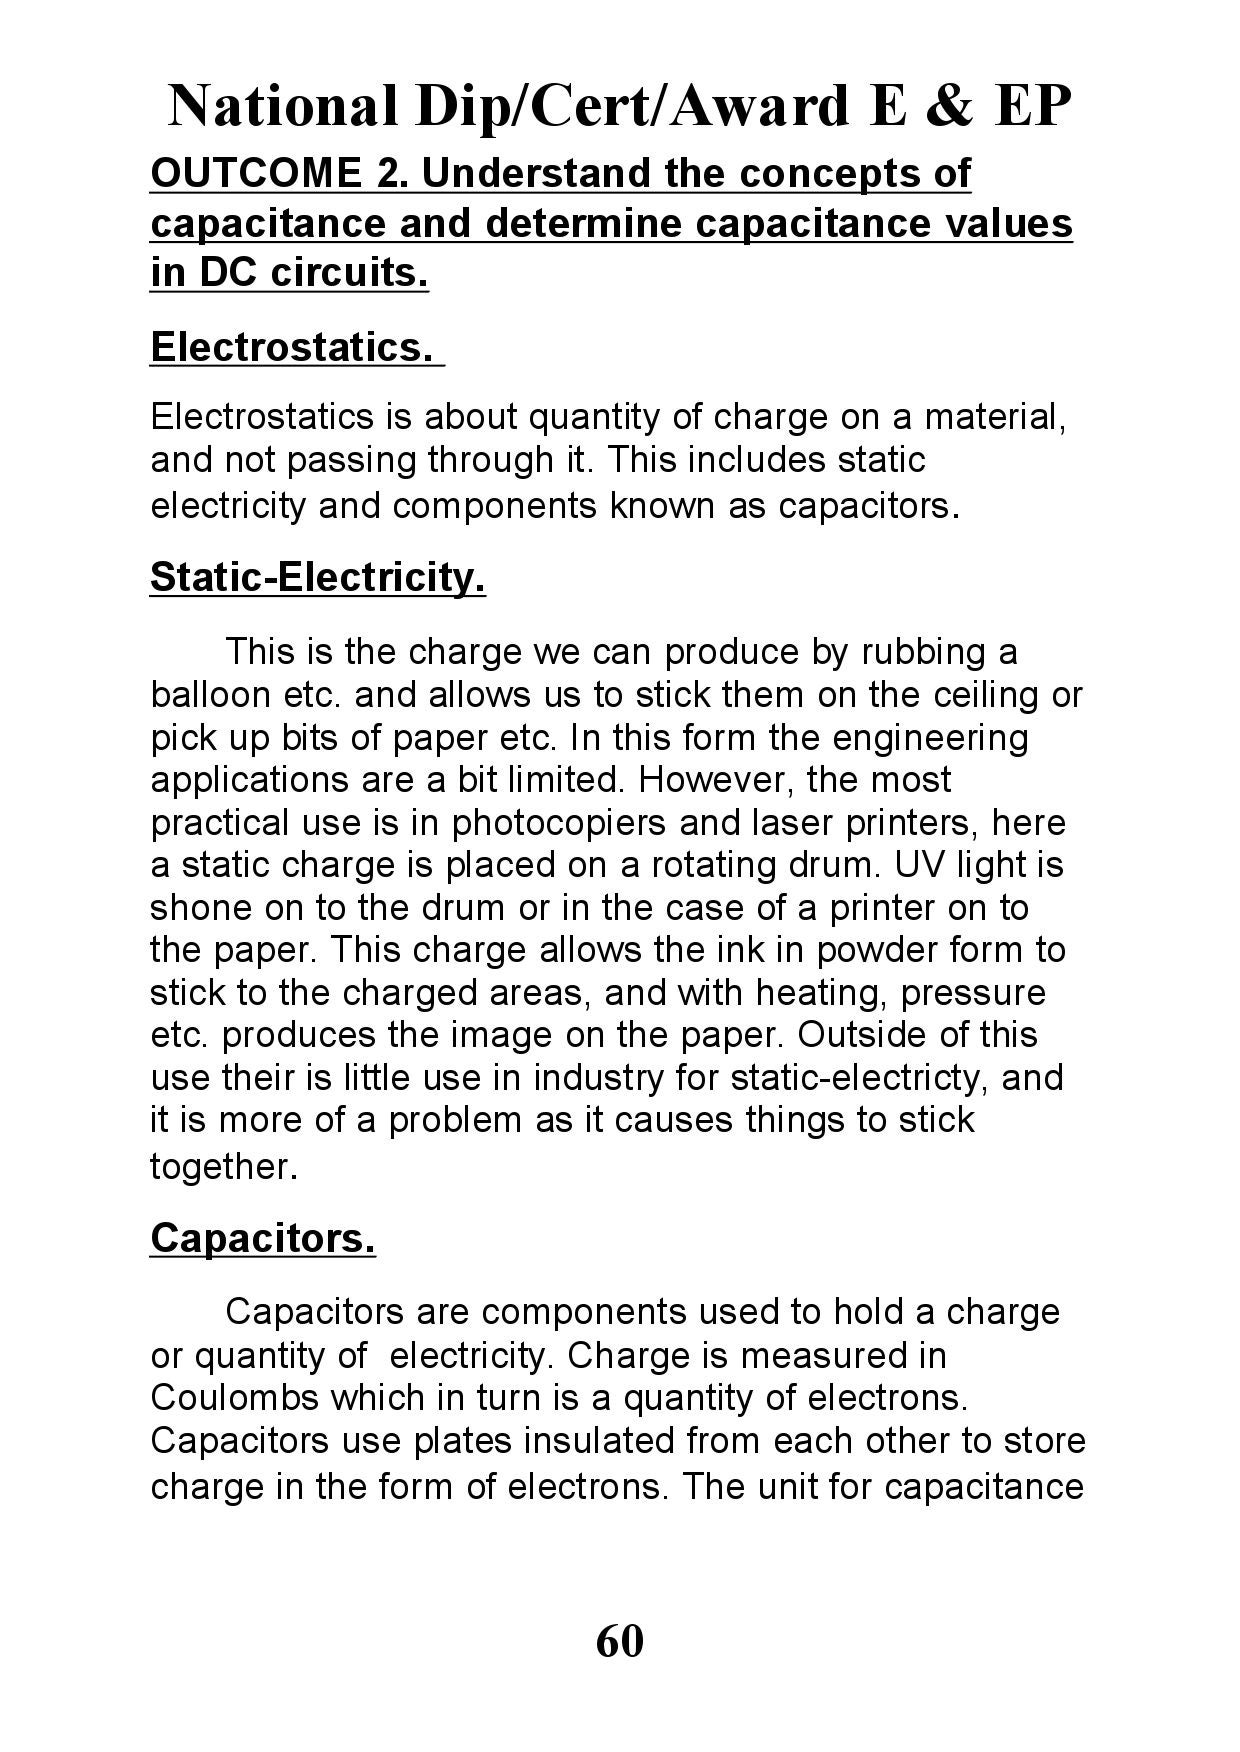 E Ep Outcome2 Yr1 By Trev Drinkw Issuu Capacitance And Charge On A Capacitors Plates